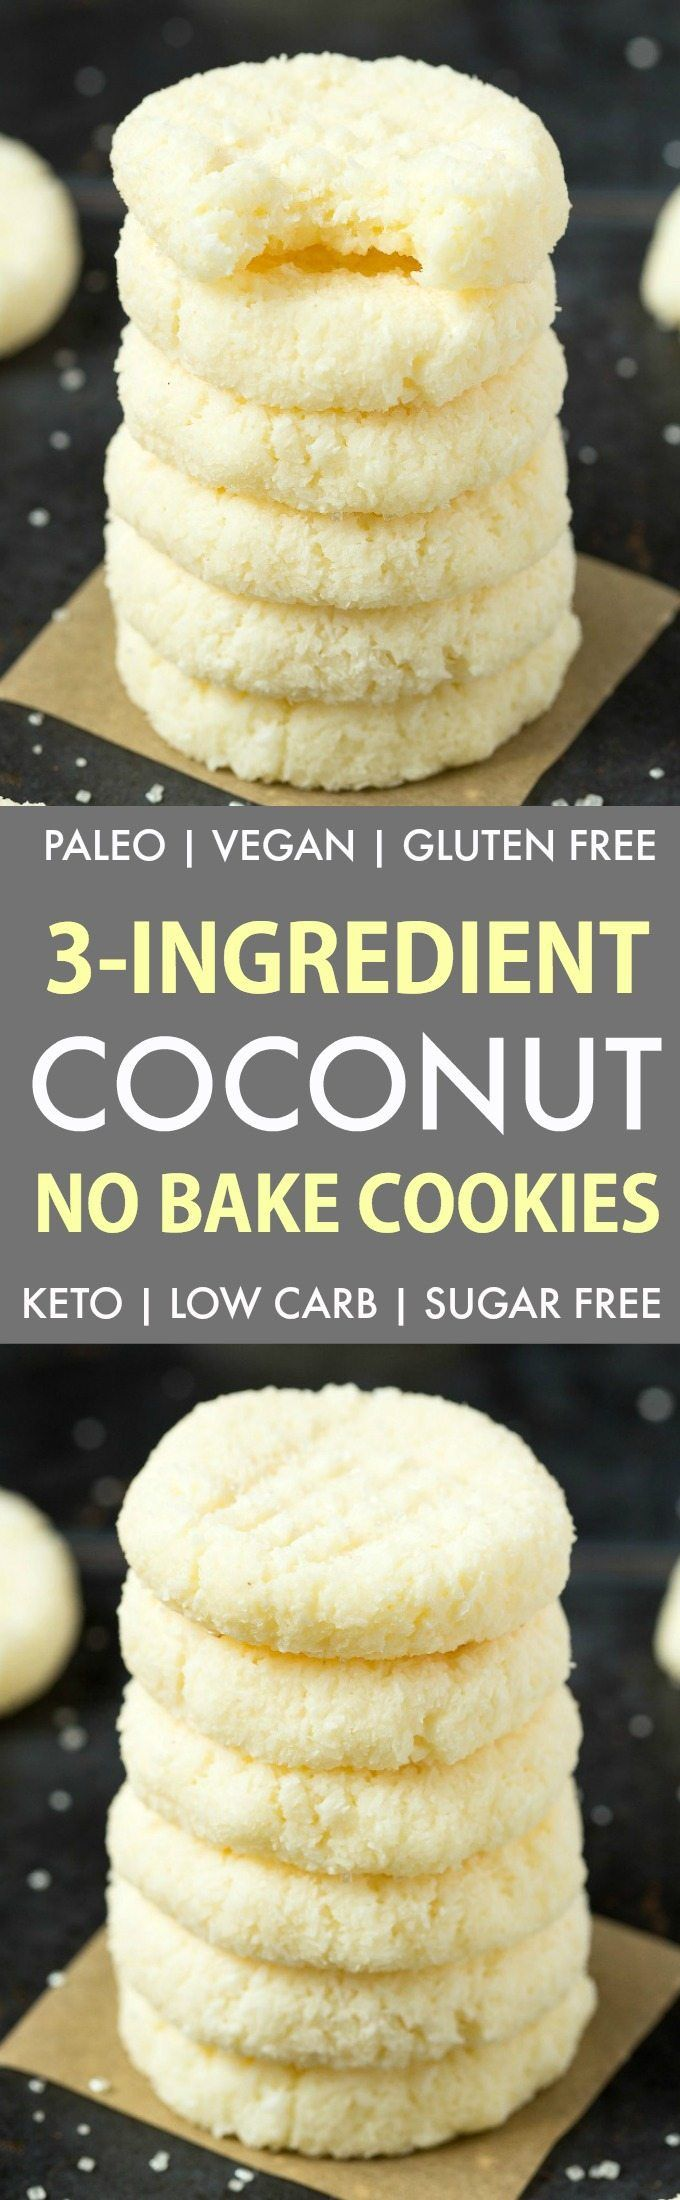 3-Ingredient No Bake Coconut Cookies (Keto, Paleo, Vegan, Sugar Free)  3cupsshredded unsweetened coconut flakesI used finely shredded1cupcoconut oil, melted1/2cupmonk fruit sweetened maple syrupCan substitute for any liquid sweetener of choice- See notes *